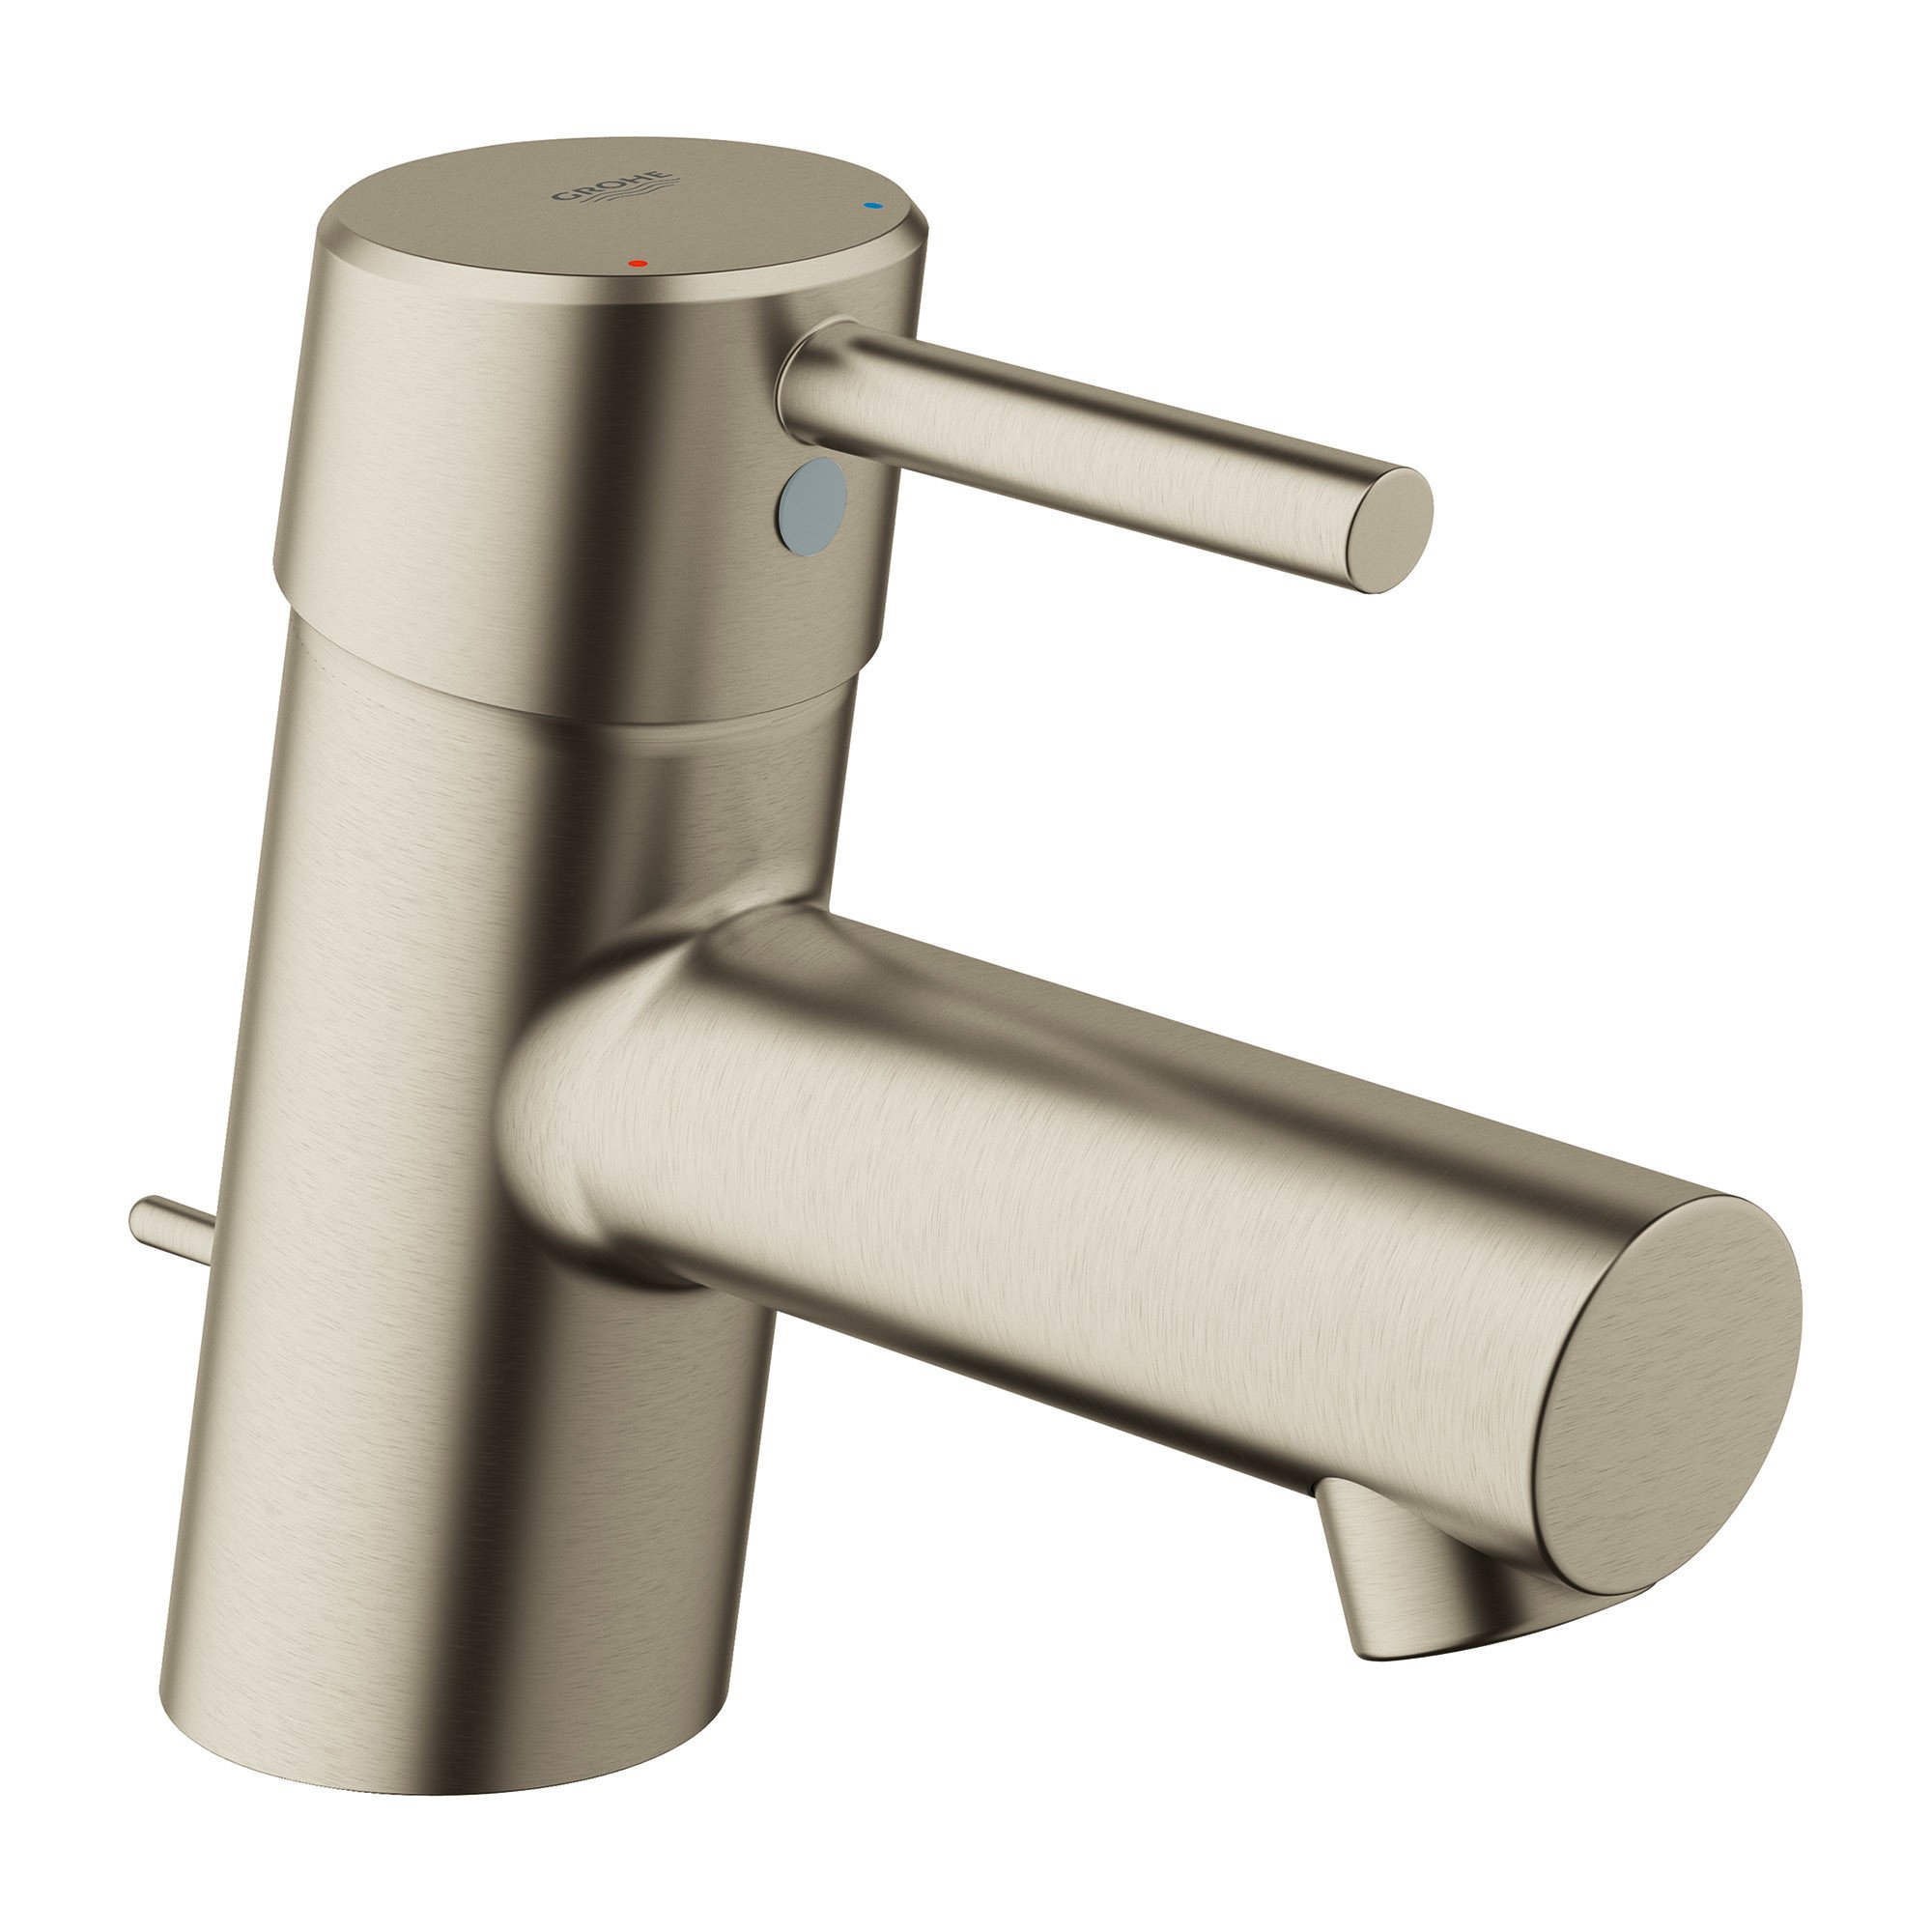 GROHE 34702EN1 Concetto single Hole Single-Handle Bathroom Faucet with Drain Assembly In Brushed Nickel